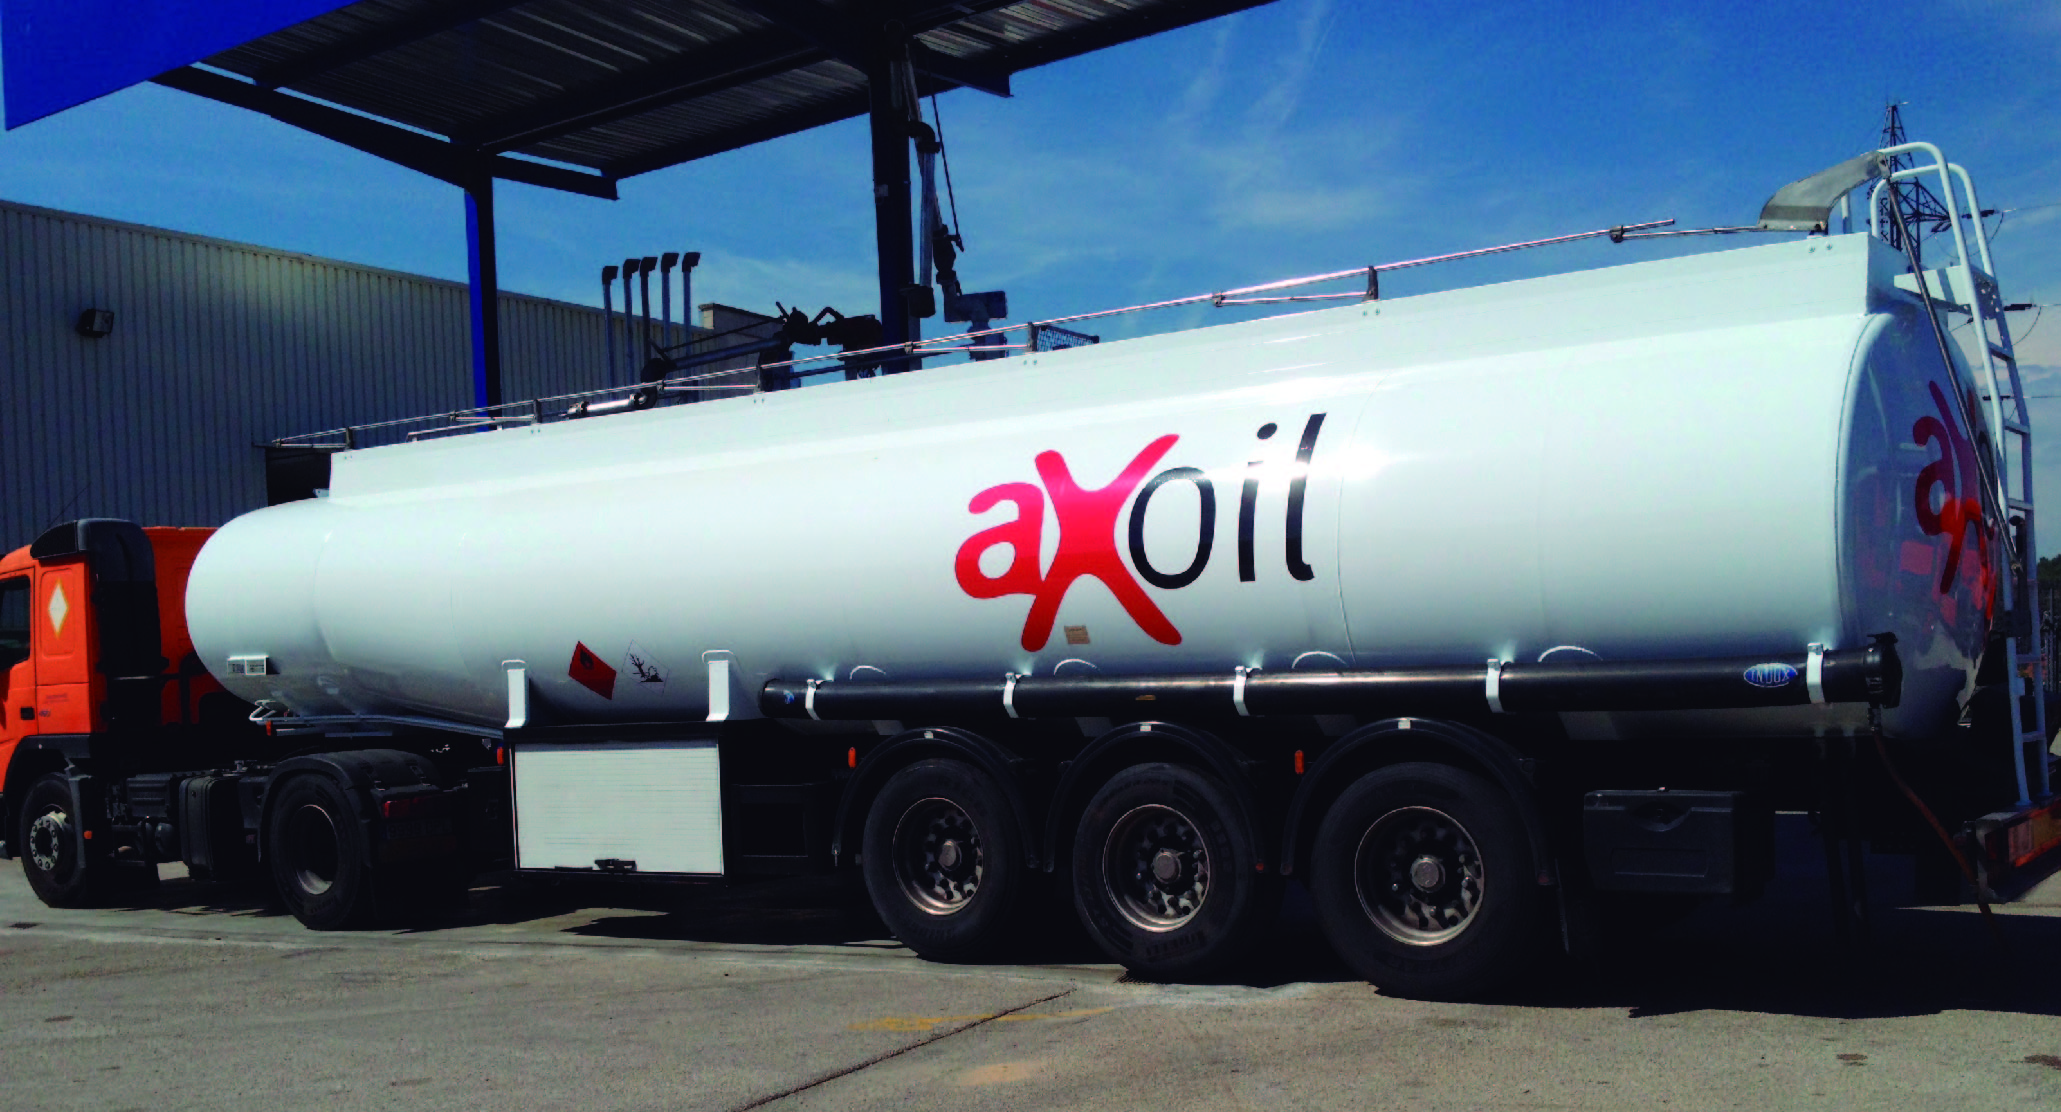 Carburants Axoil